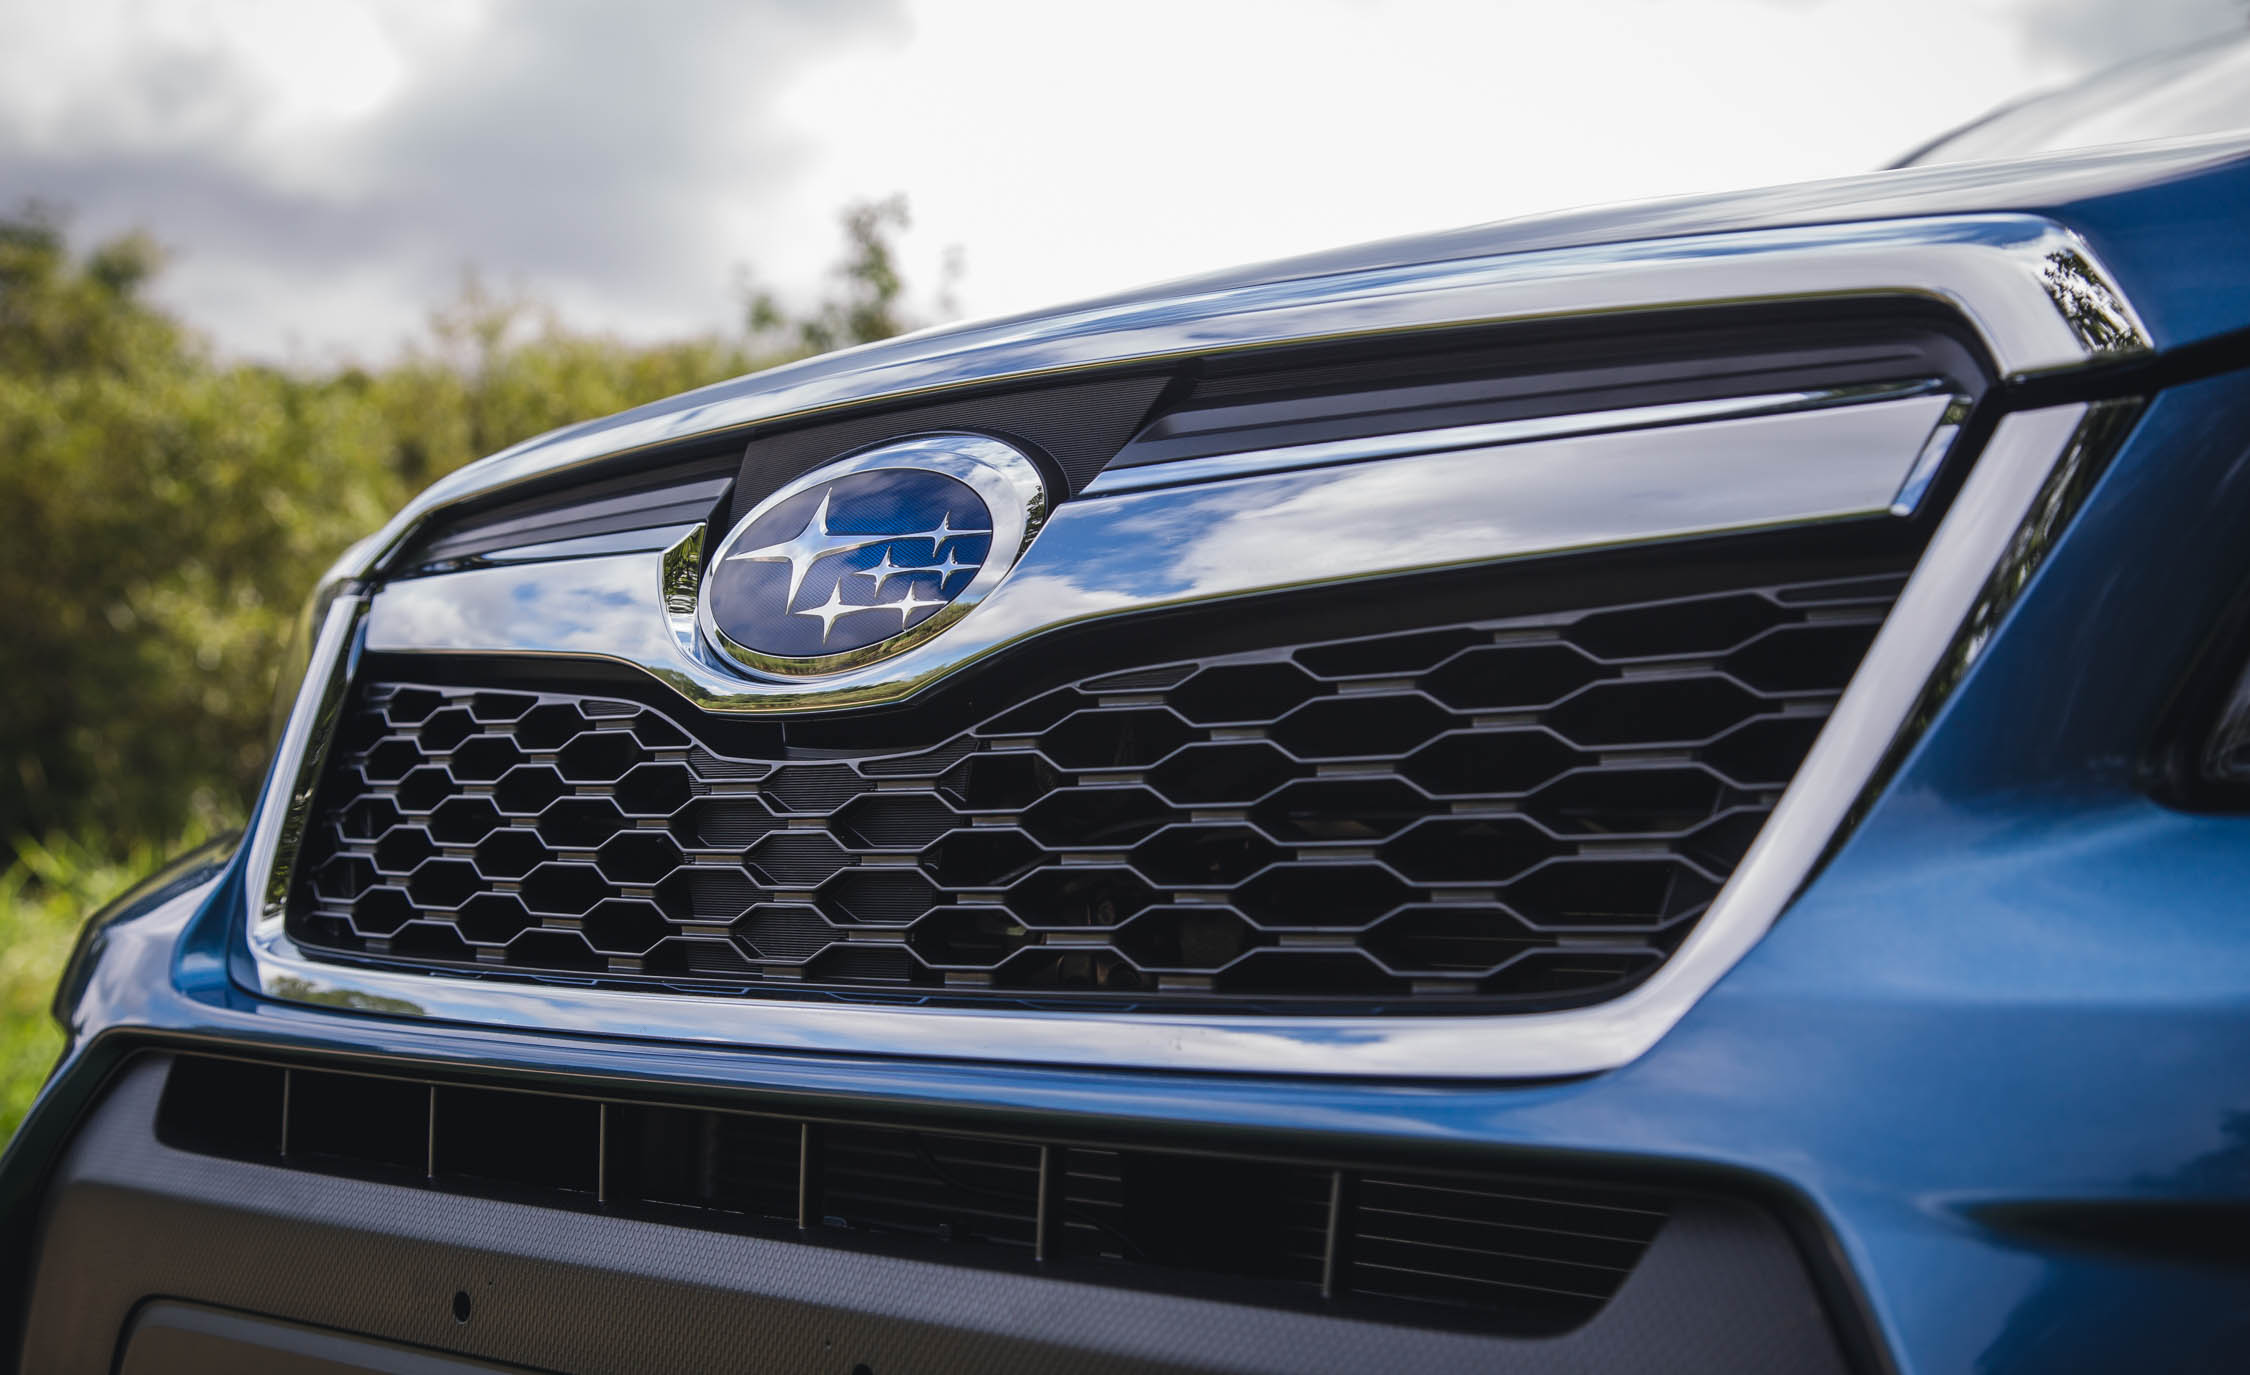 2016 Subaru Forester 2 0xt Touring Exterior Grille (Photo 7 of 29)